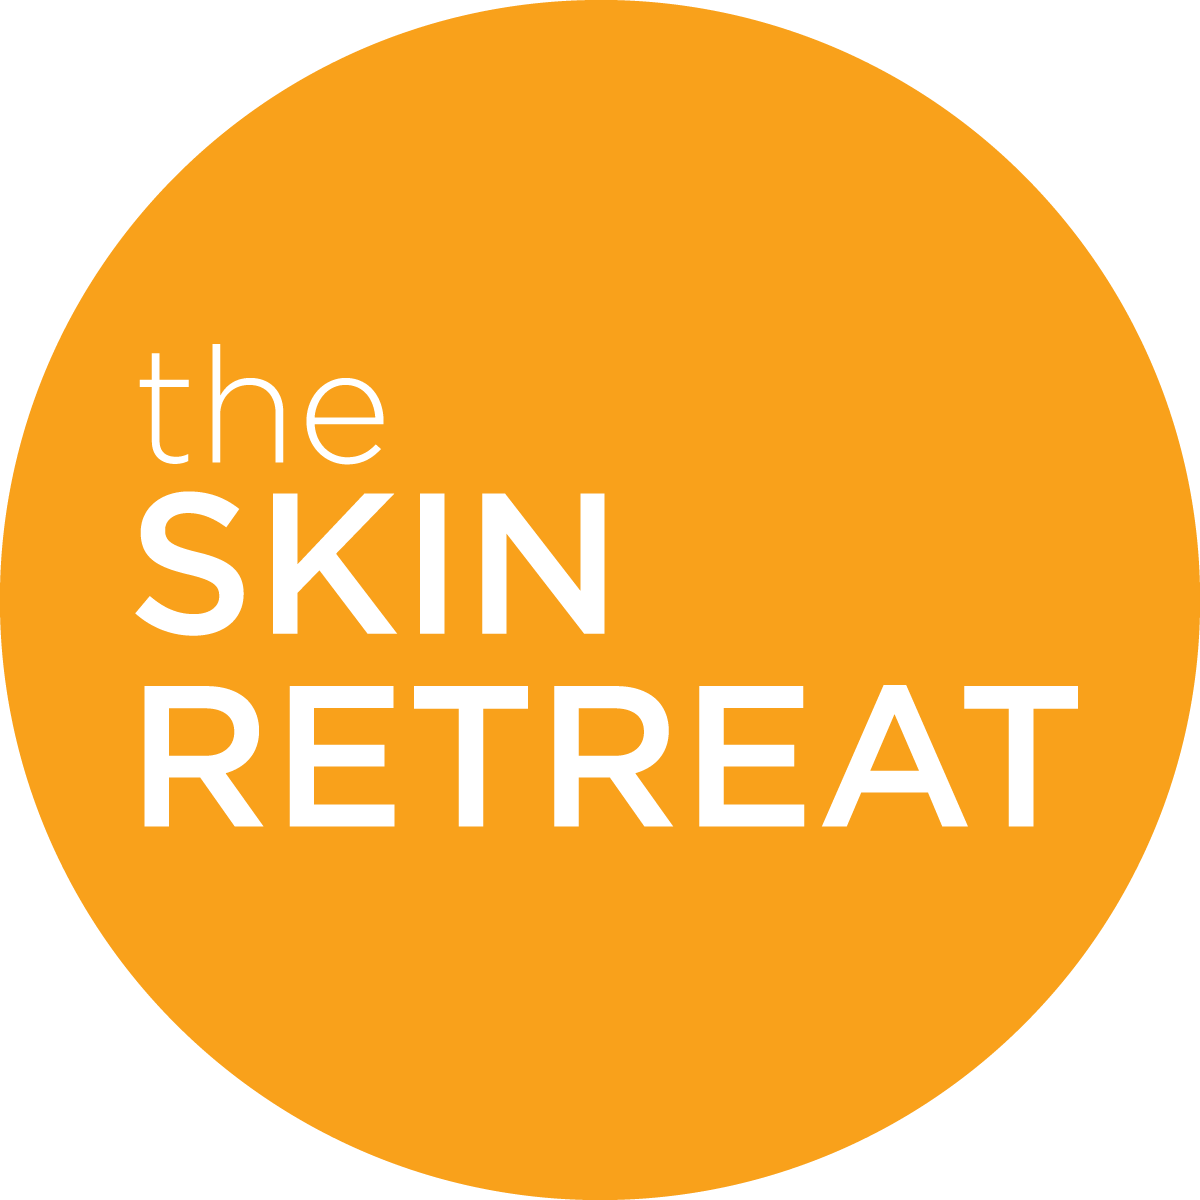 The Skin Retreat | Non-Surgical Cosmetic Procedures in Little Rock